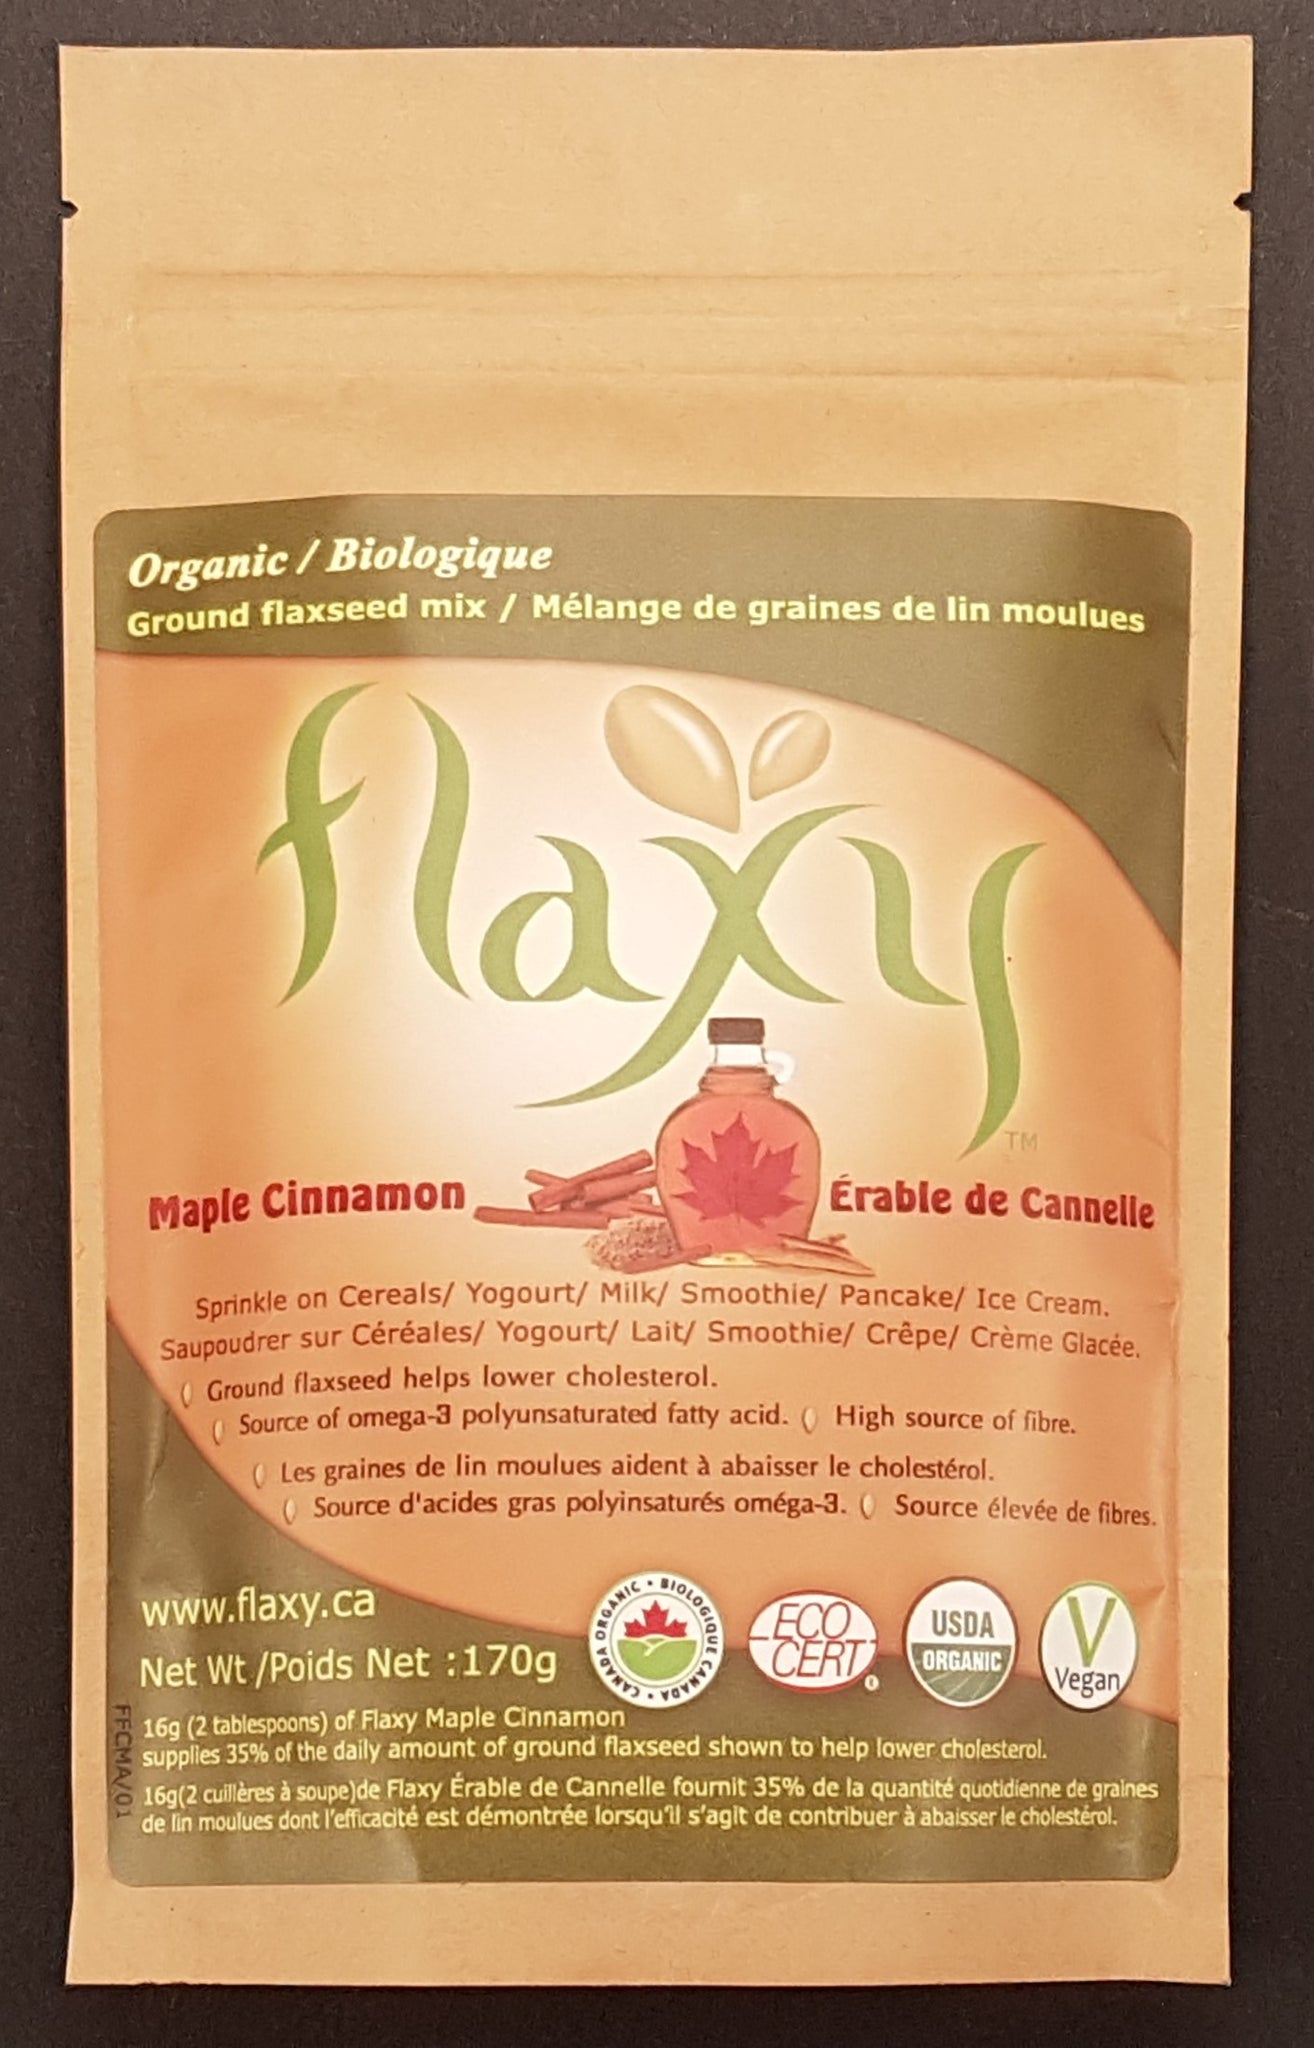 Flaxy - Maple Cinnamon Organic - Flaxy